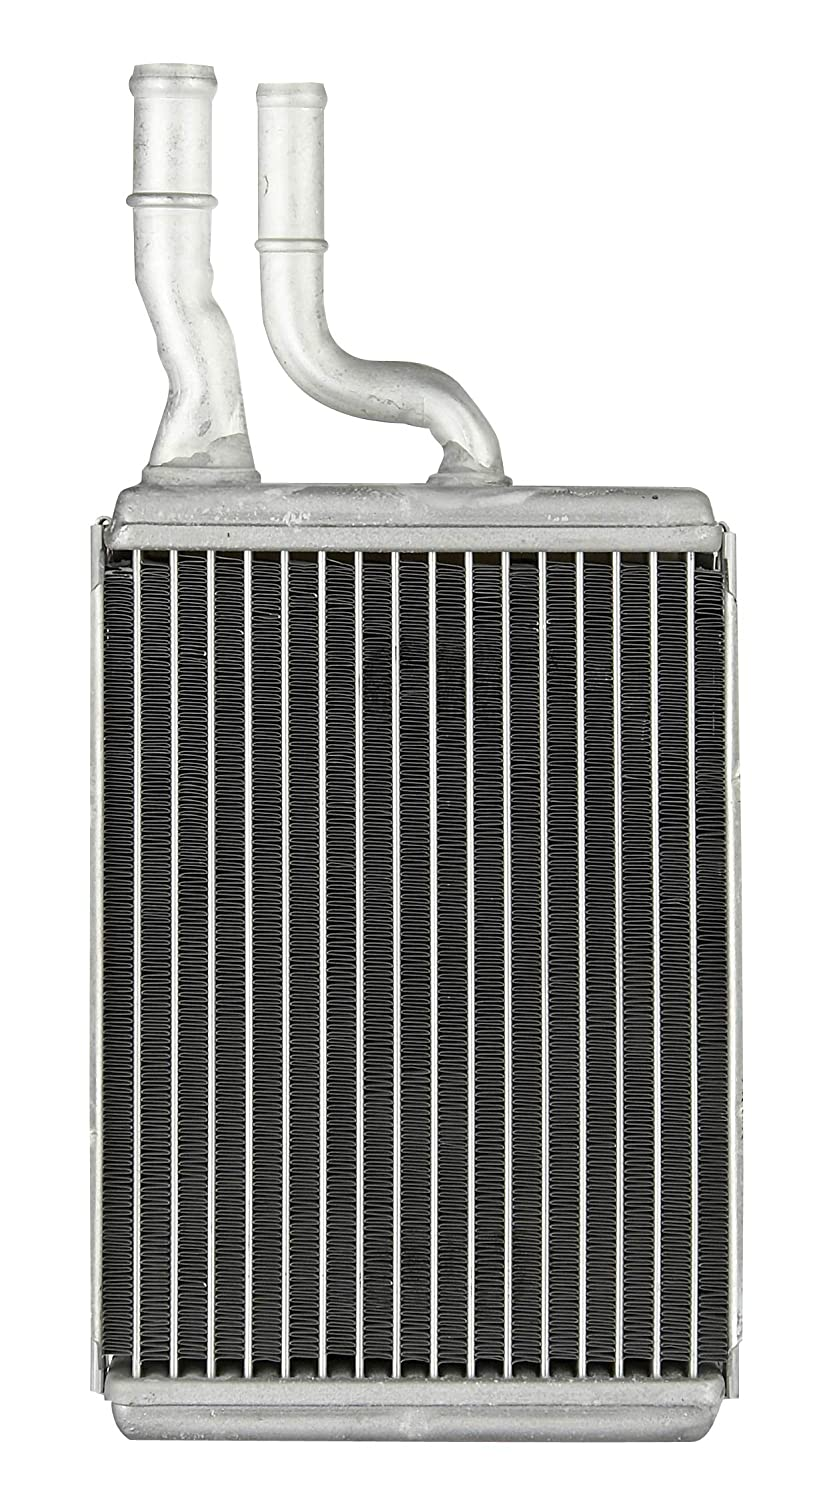 Spectra Premium 94735 Heater Core for Ford Mustang